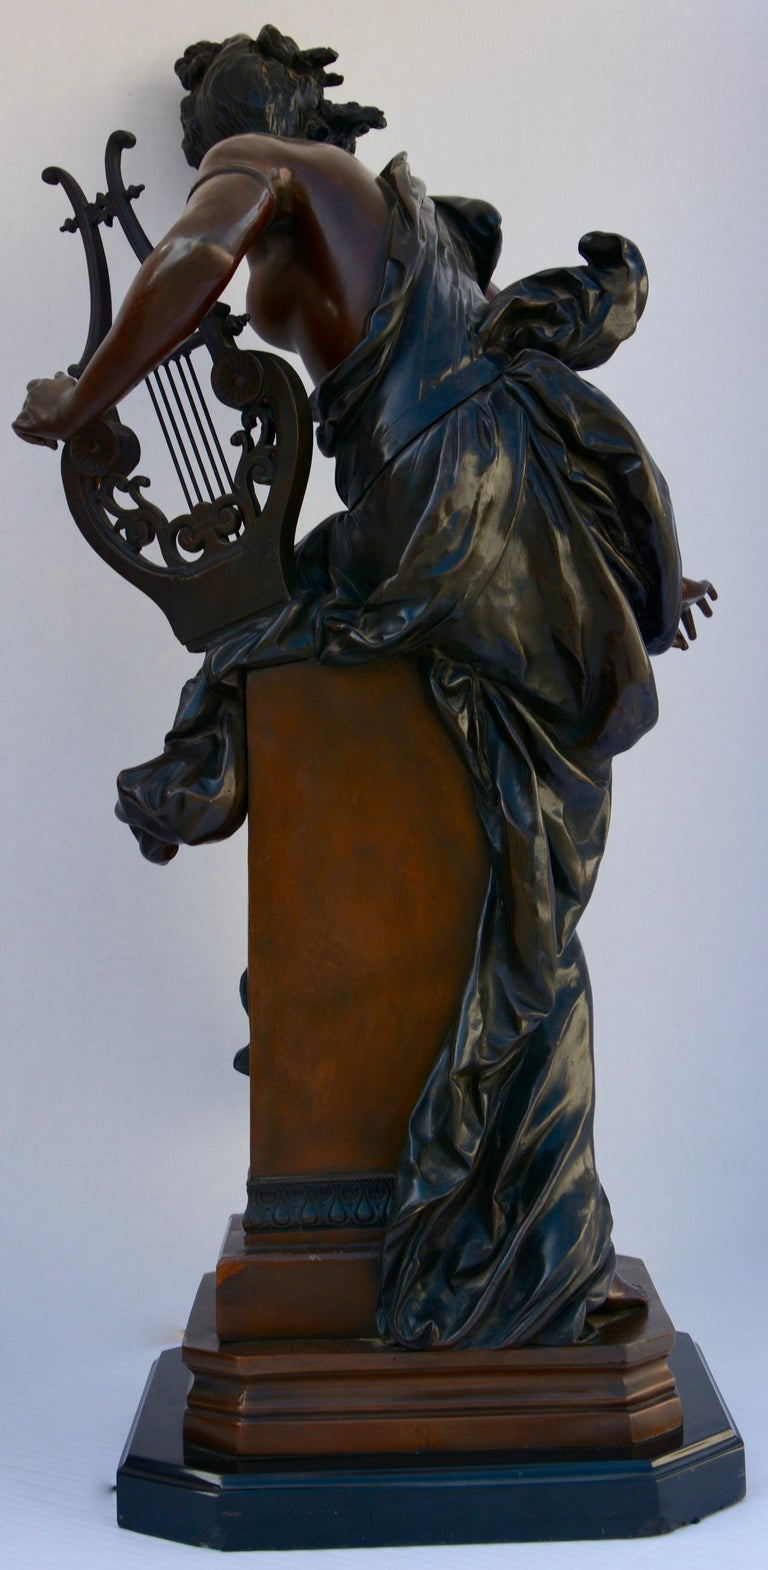 Le Melodie Bronze Statue by Albert-Ernest Carrier-Belleuse In Good Condition For Sale In Cookeville, TN